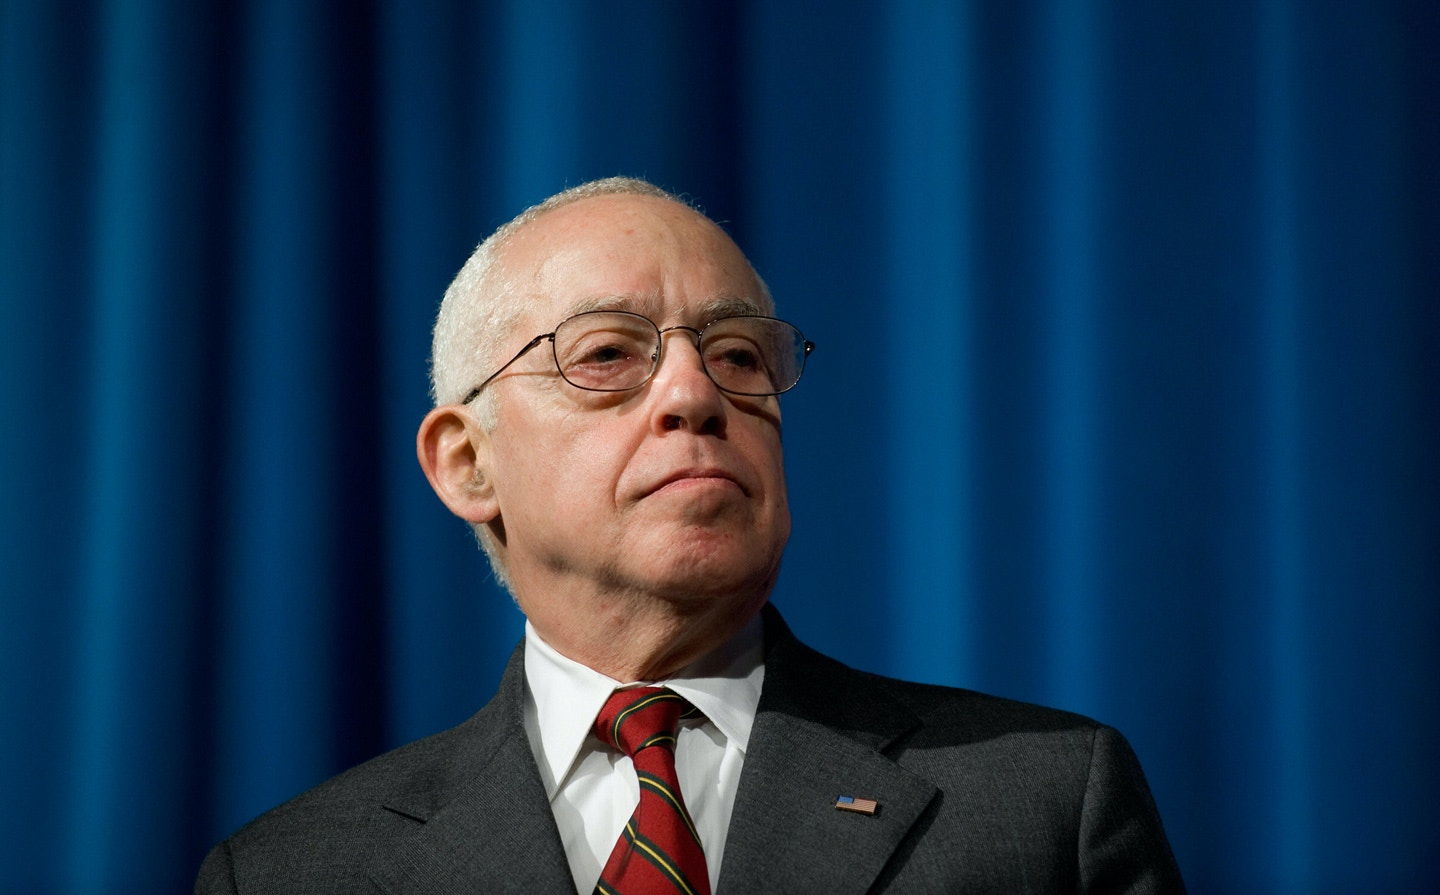 US Attorney General Michael Mukasey listens to a speaker during the graduation ceremony for Federal Bureau of Investigation Special Agents at the FBI Academy in Quantico, Virginia, on October 30, 2008. AFP PHOTO / Saul LOEB (Photo credit should read SAUL LOEB/AFP/Getty Images)